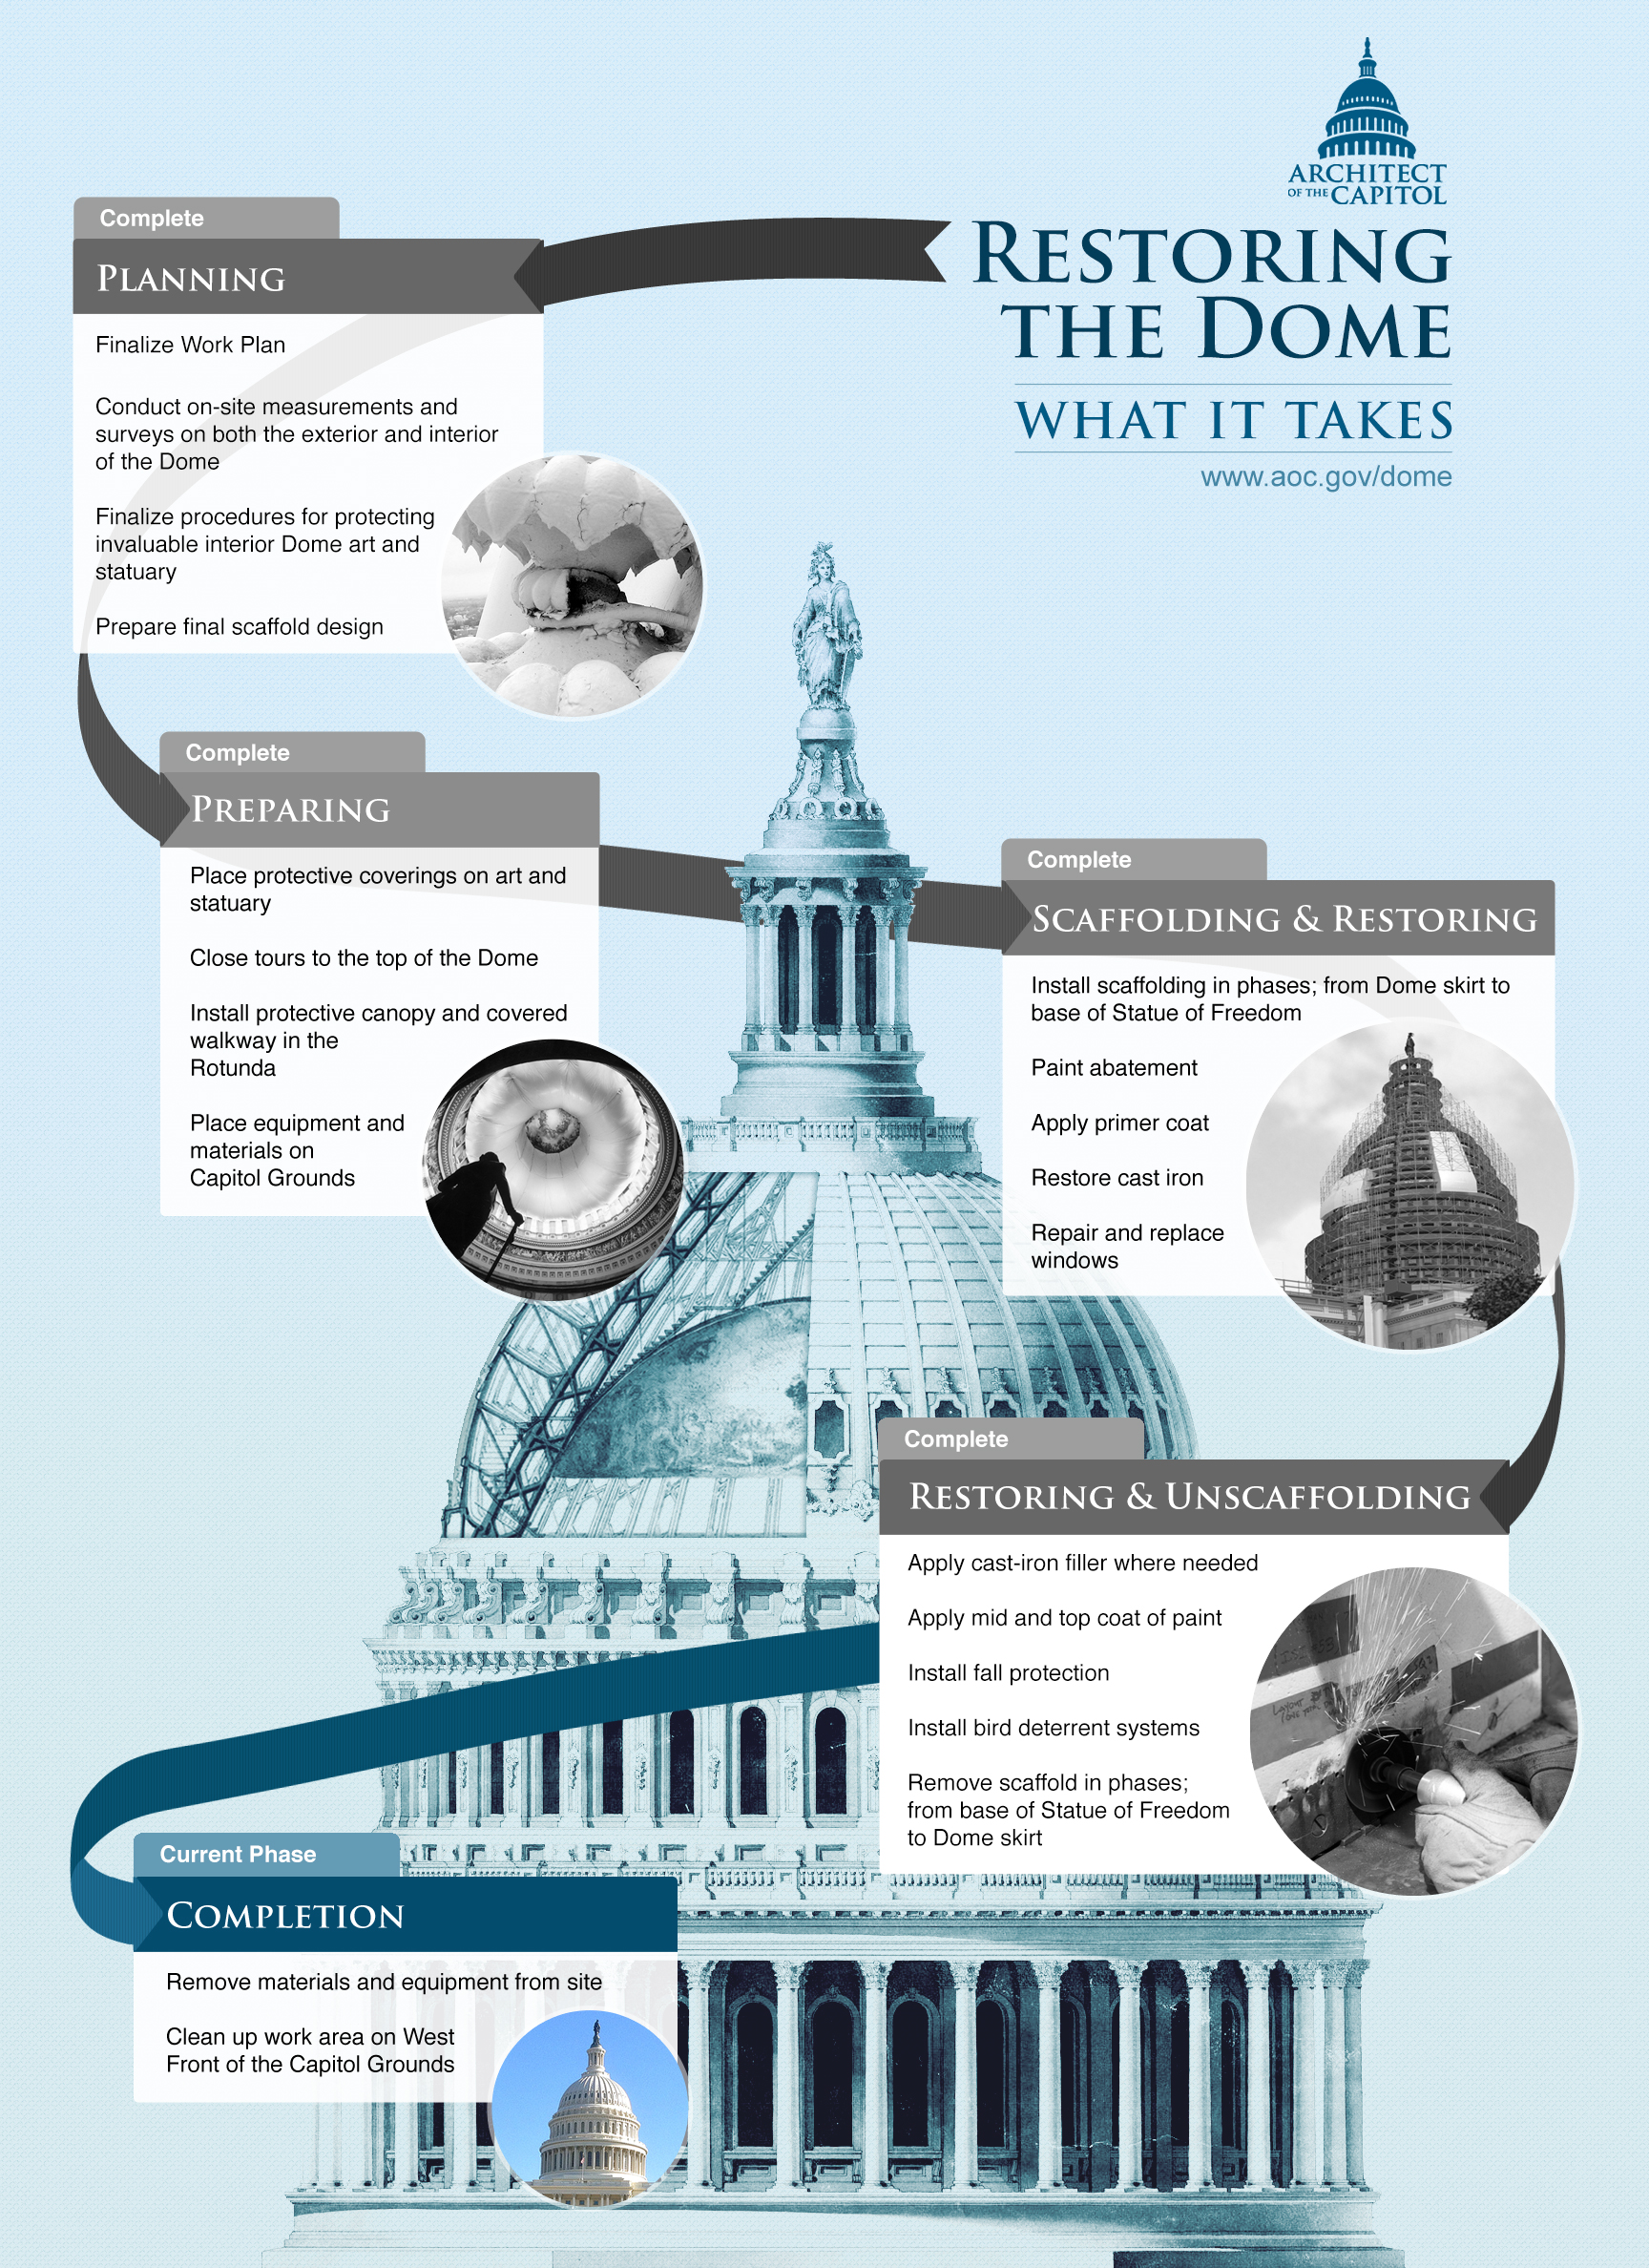 Infographic that shows what it takes to restore the Capitol Dome.